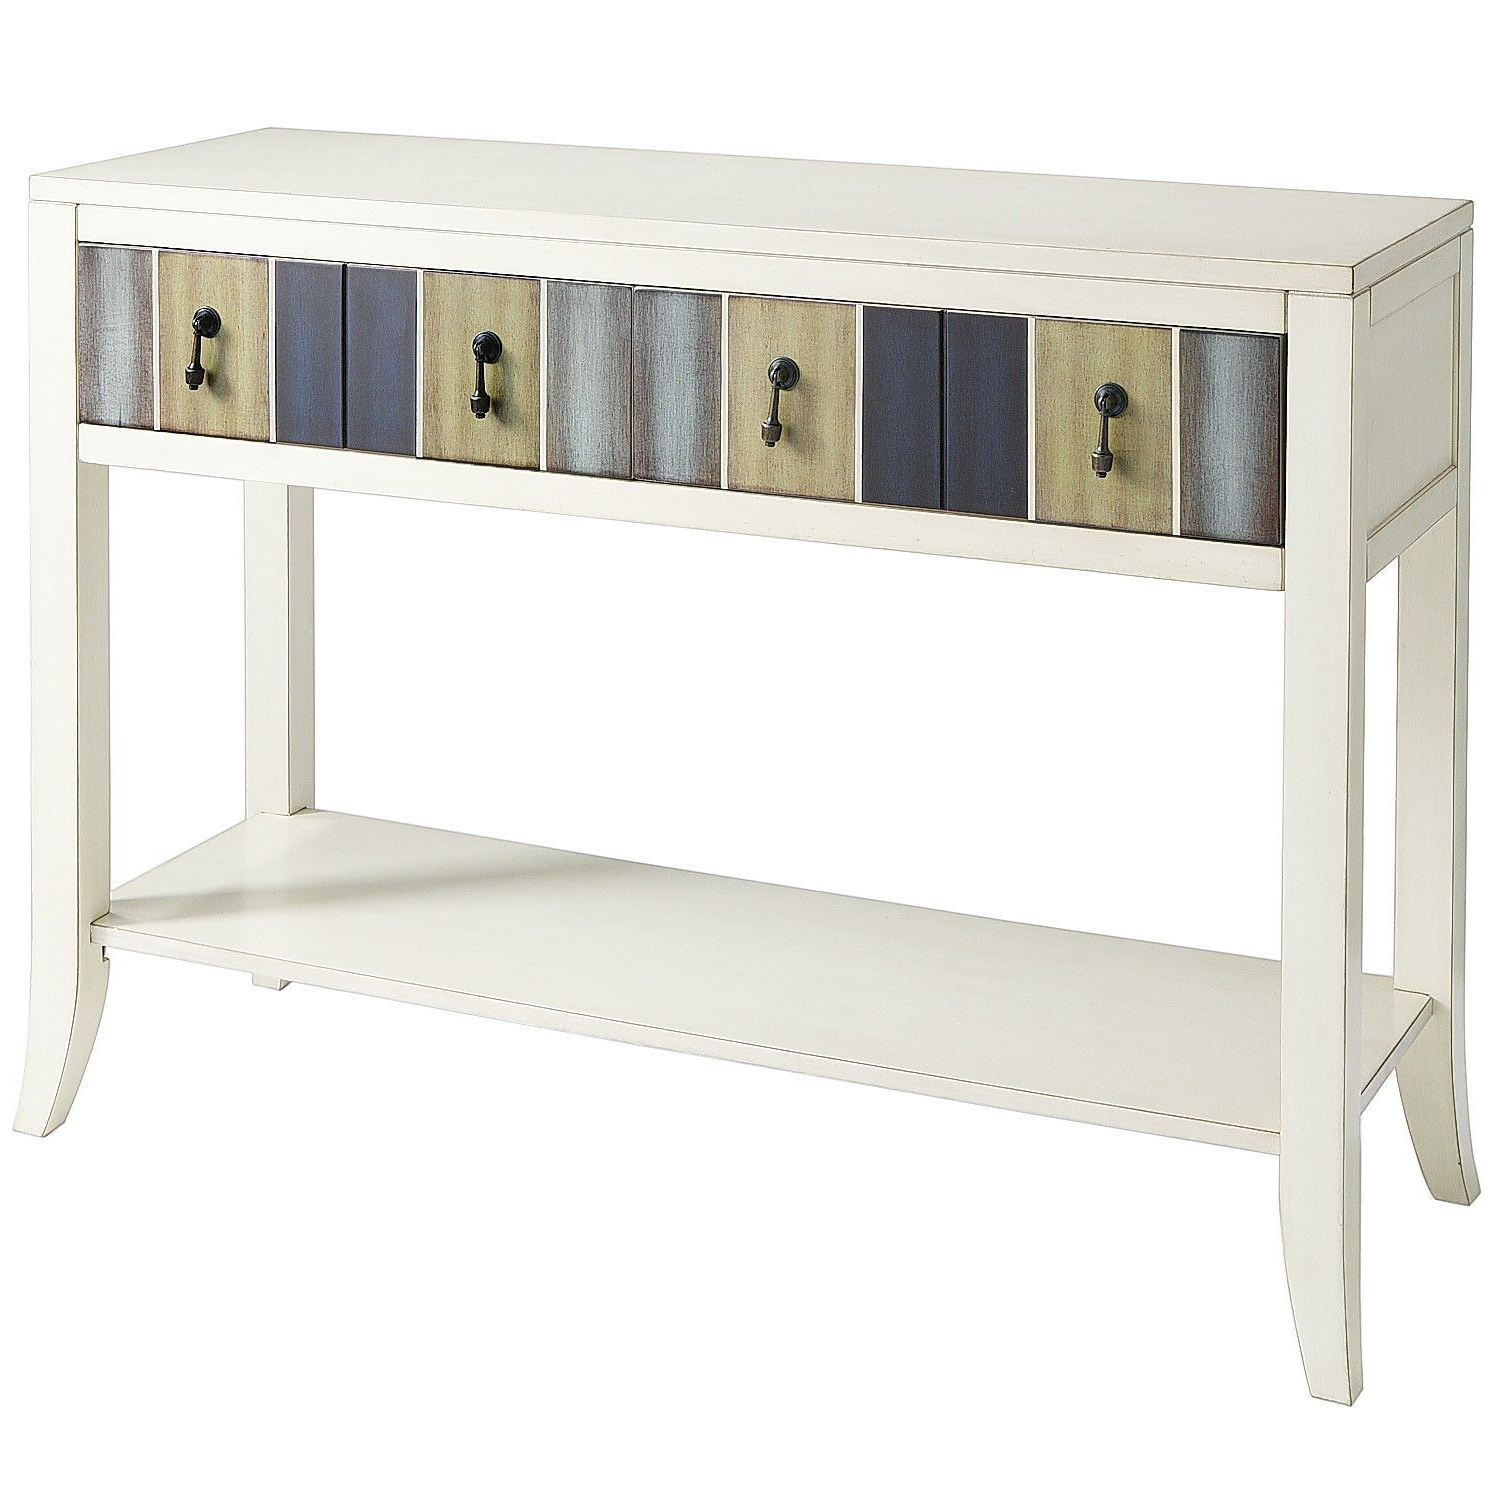 Truett Console Table | Console Tables | Pinterest | Console Tables Pertaining To Parsons Grey Solid Surface Top & Stainless Steel Base 48X16 Console Tables (View 3 of 20)